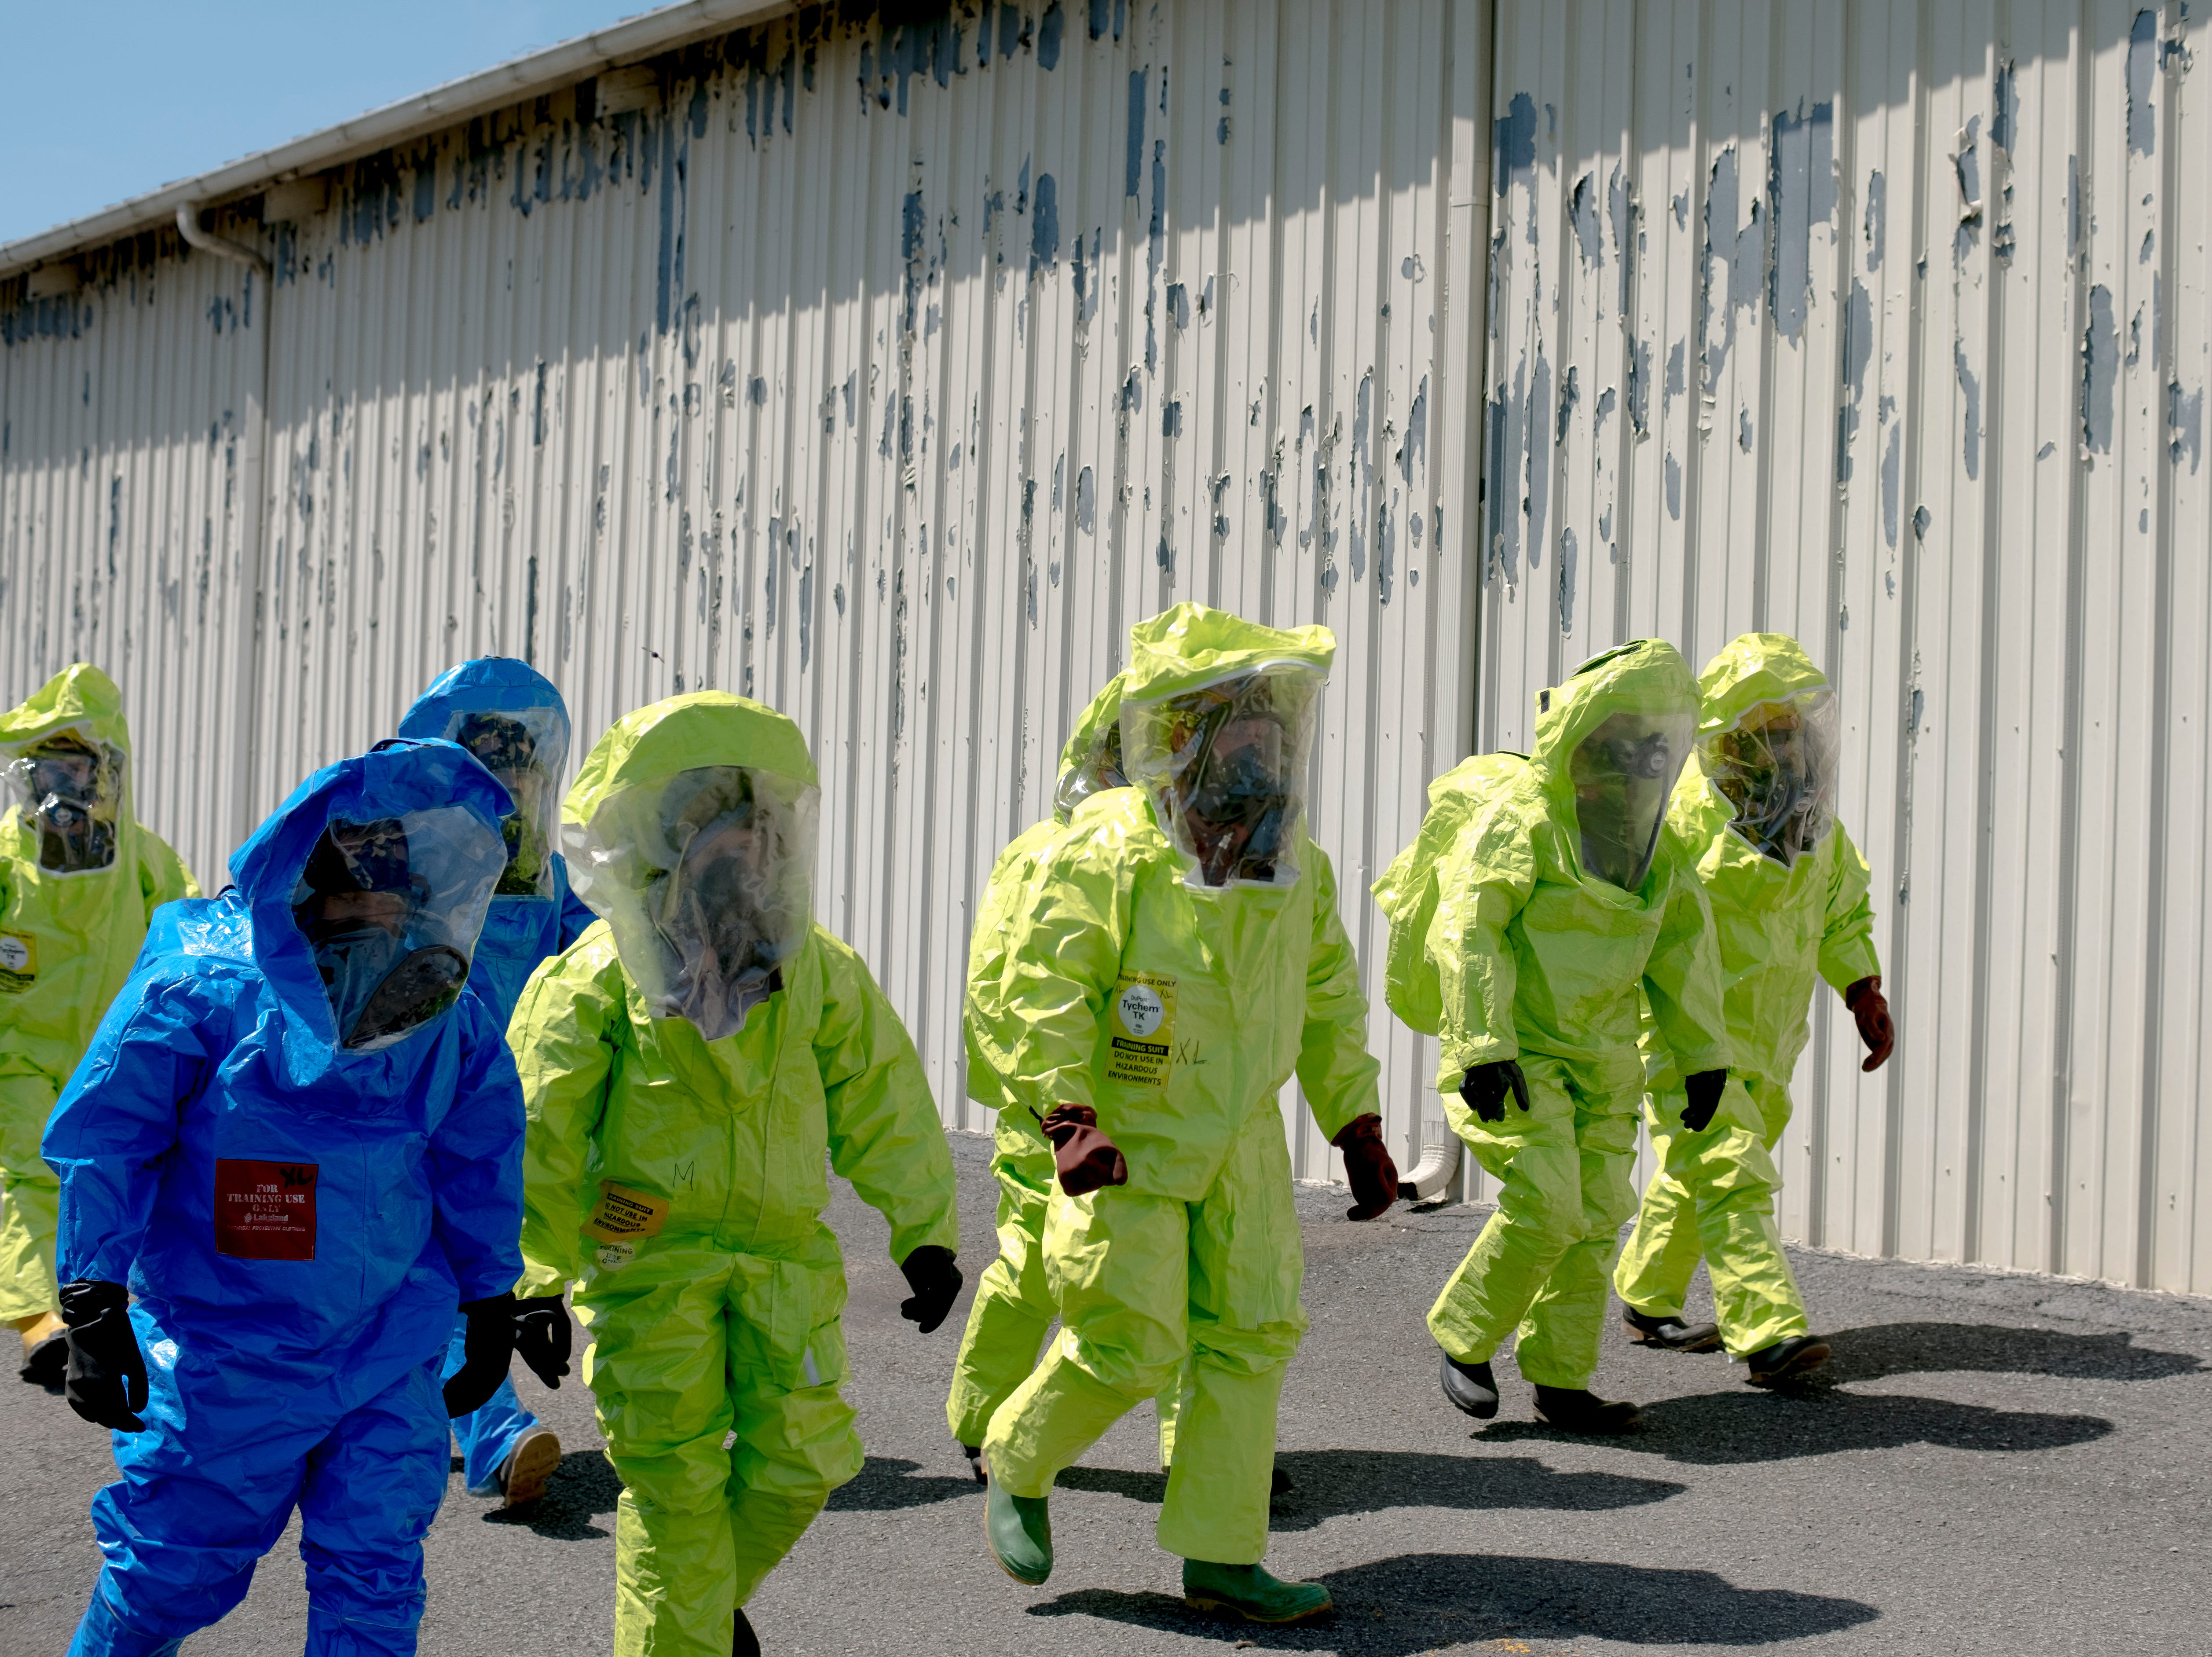 Students in a hazardous material technicians class at UT walk in Class A hazmat suits during a field training session near the UT Records Management building on Middlebrook Pike in Knoxville, Tennessee on Wednesday, April 3, 2019. The students, most of them with military backgrounds, were training to work for a company that remediates underground bombs and hazardous material in brown fields. Their training requires OSHA's 29 CFR 1910.120 certification, which private sector emergency responders obtain after successfully undergoing hazardous material response training, said Charles Gluck, a safety consultant with UT and the leader of the training exercise.